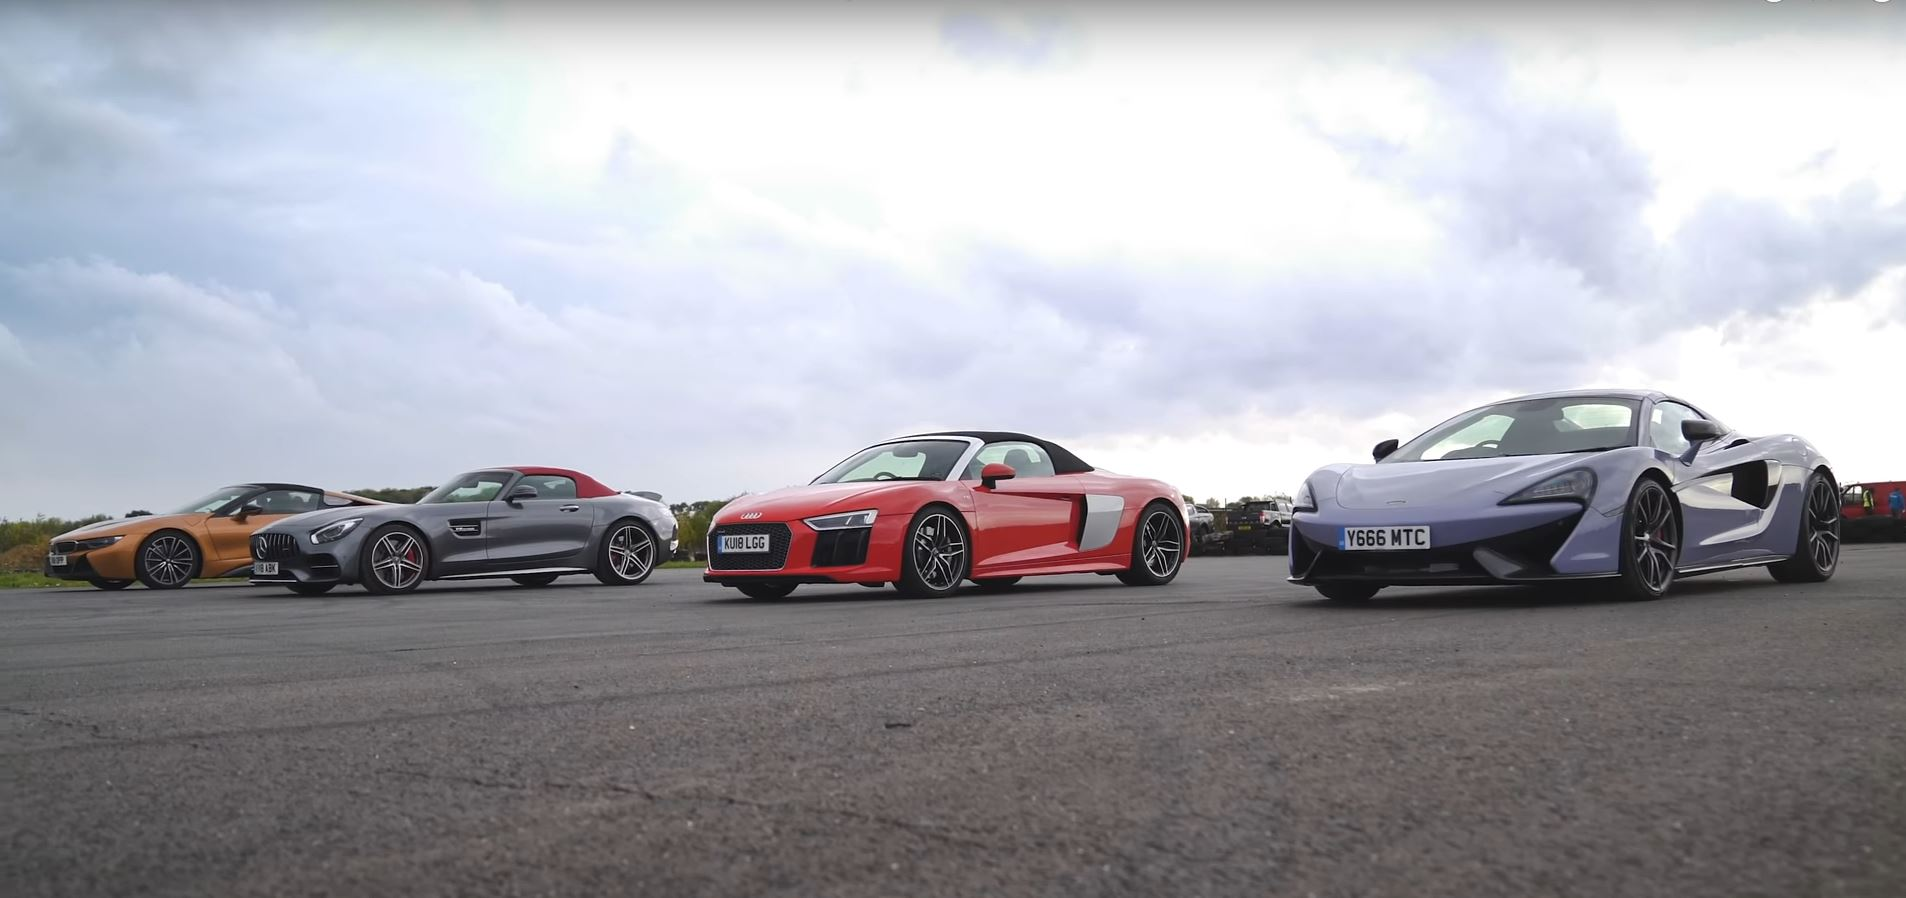 Roadster Race Features Amg Gt C Audi R8 Bmw I8 And Mclaren 570s